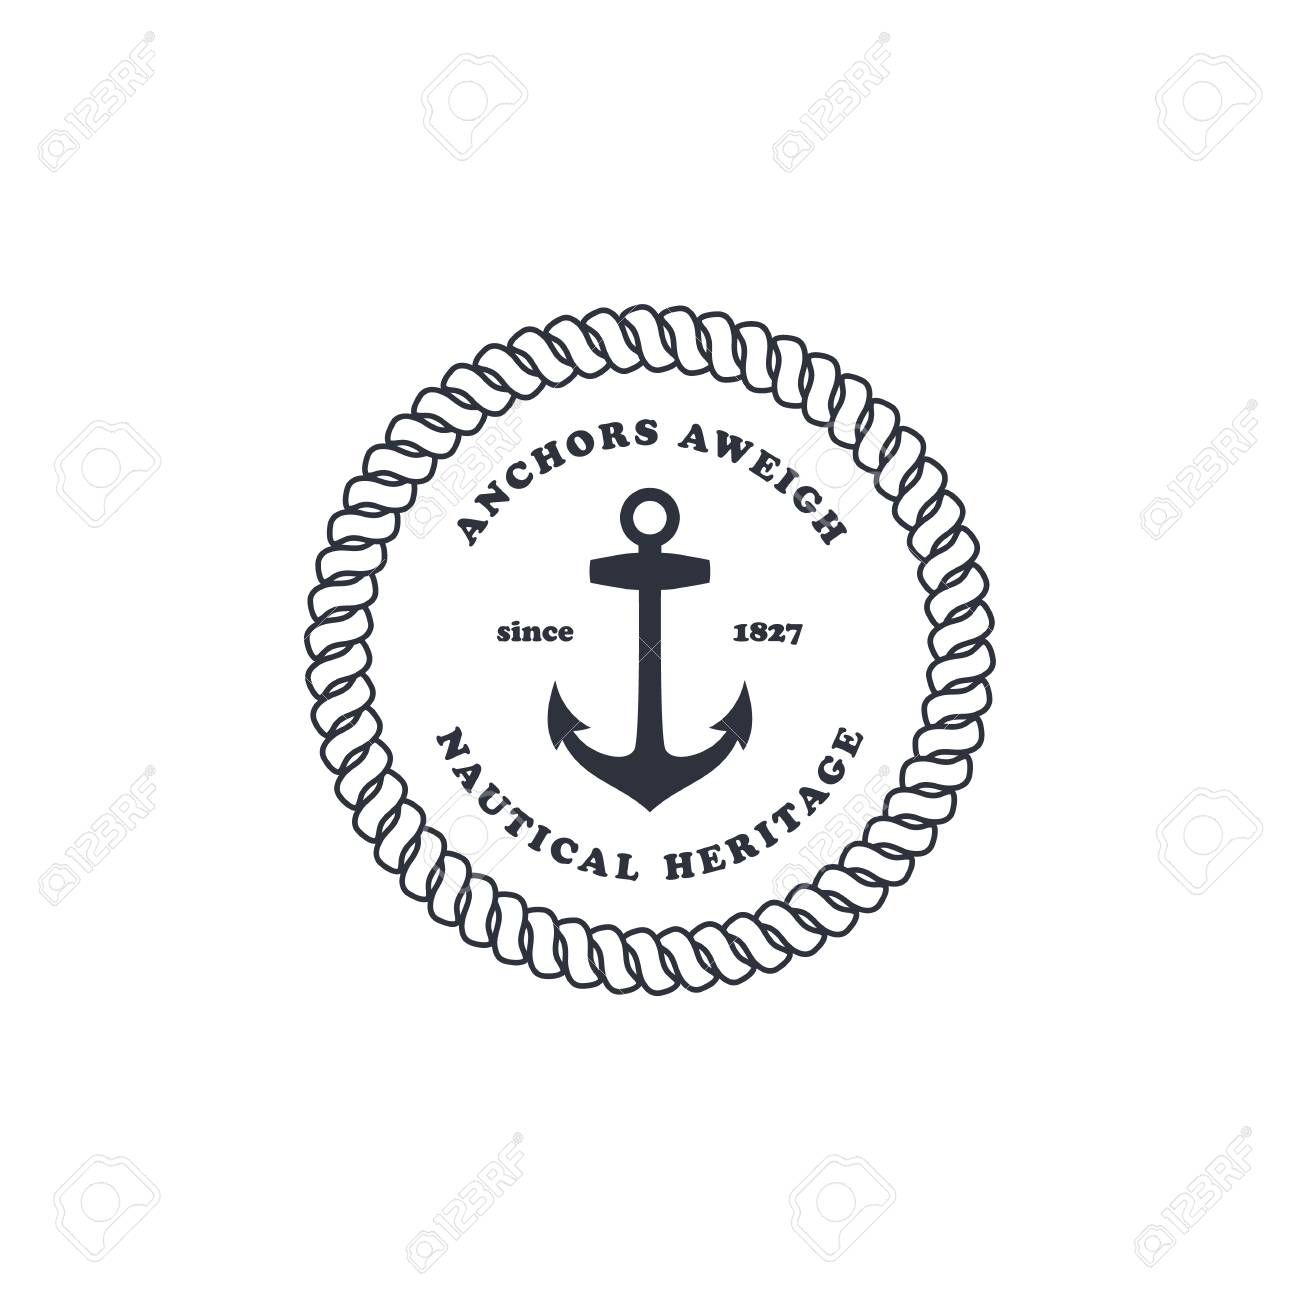 Sailor stock photos illustrations and vector art - Sailor Anchor Ocean Nautical Theme Vector Art Illustration Stock Vector 50308918